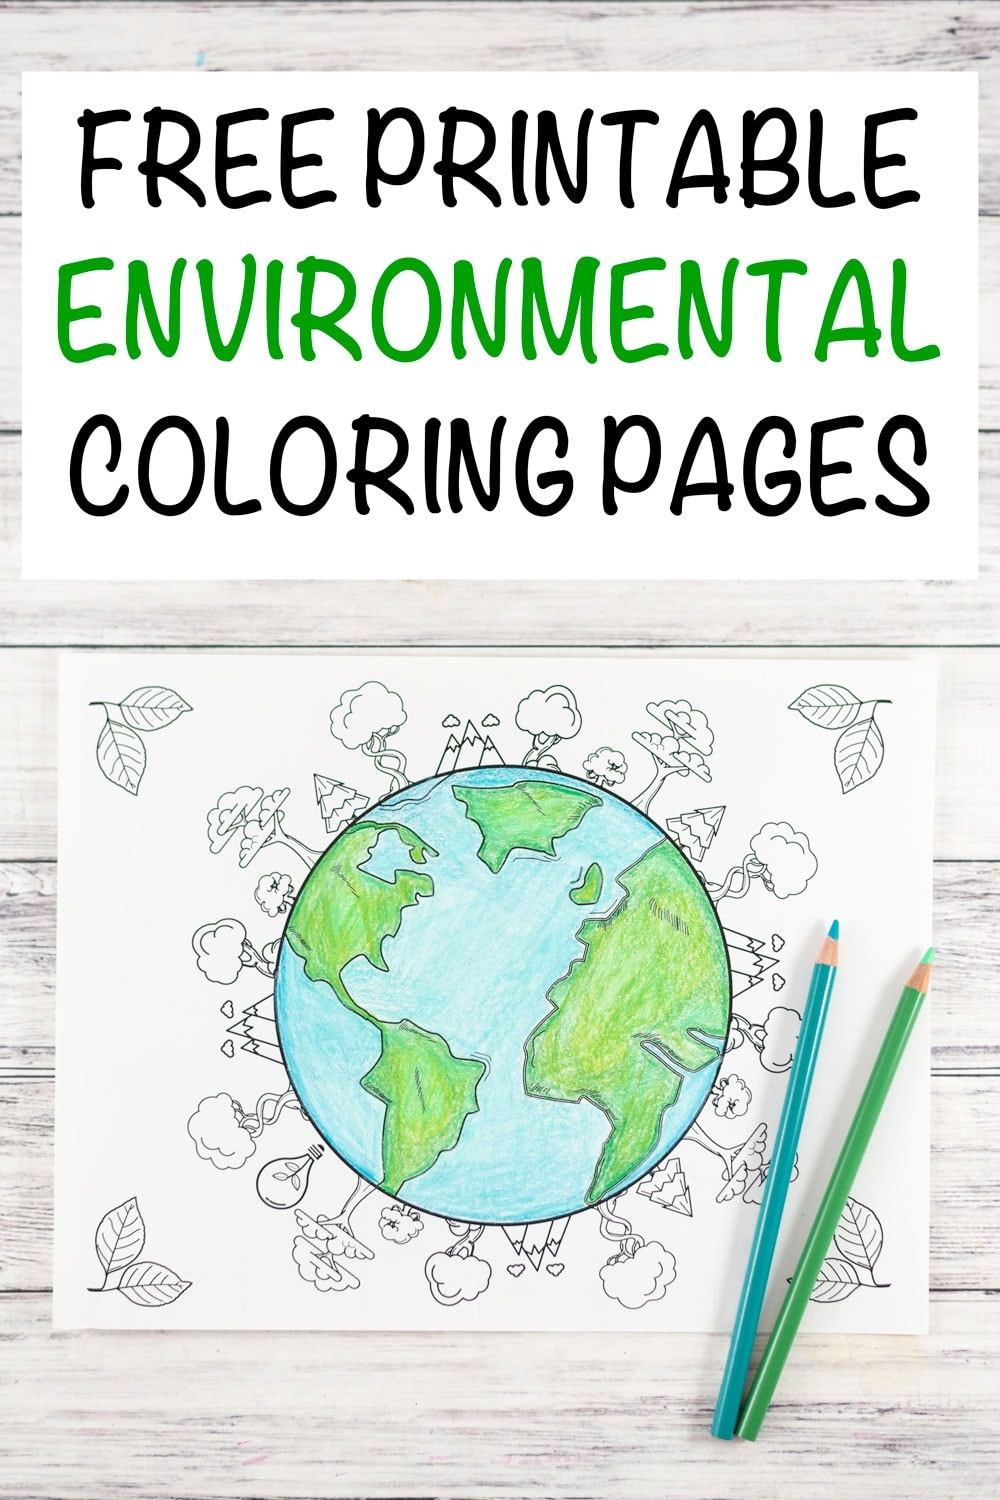 20+ Earth Day And Environmental Coloring Pages - The Artisan Life - Earth Coloring Pages Free Printable